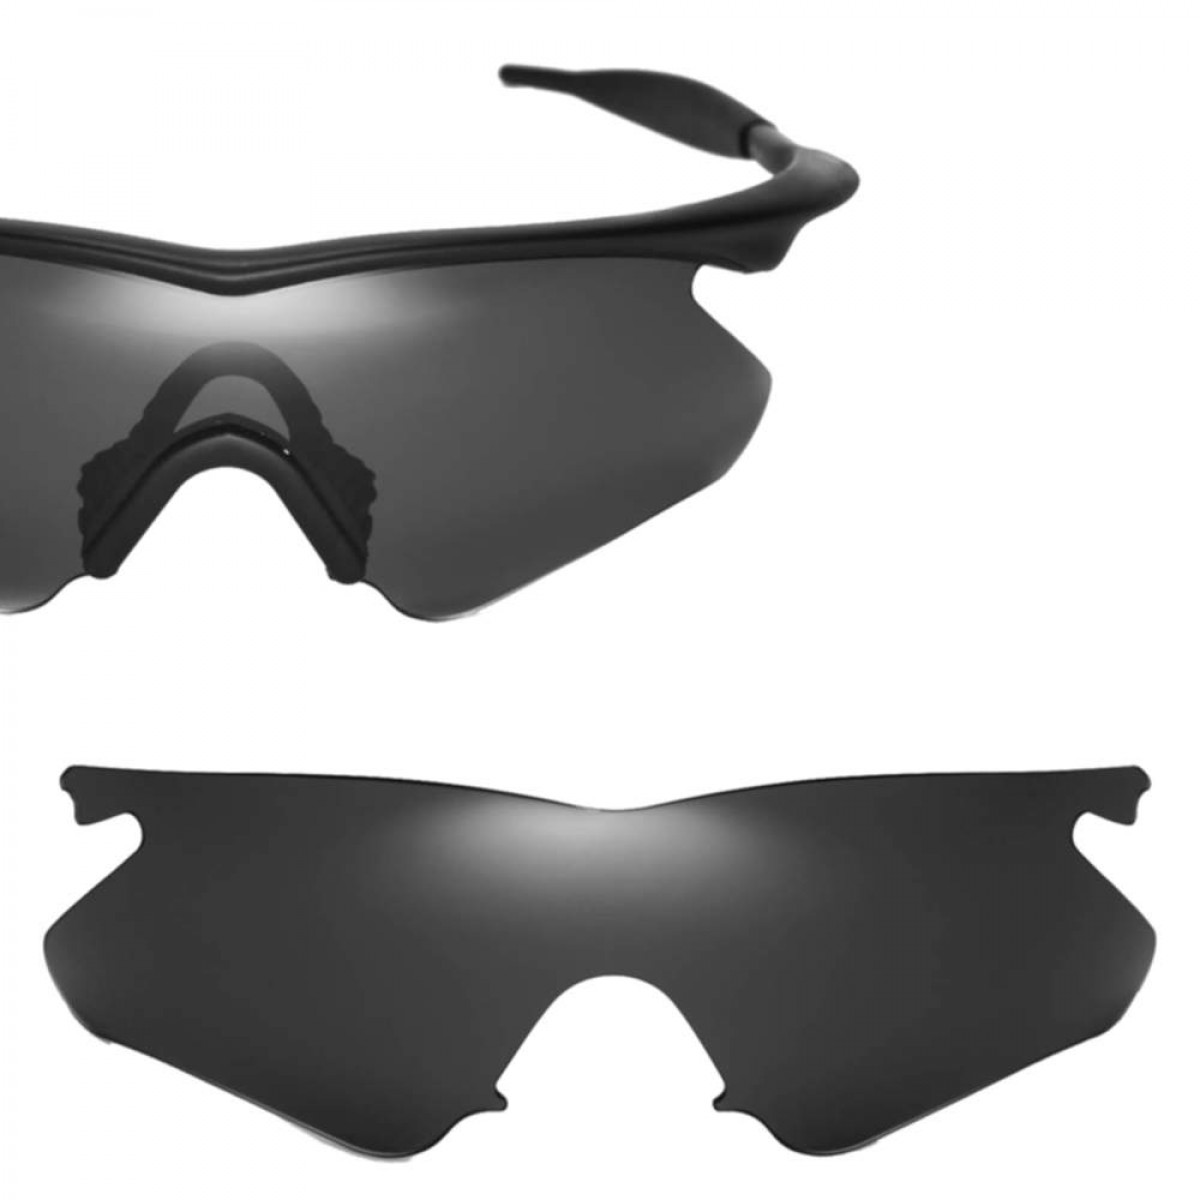 Cofery Lenses Store Cofery Replacement Lenses for Oakley M Frame ...